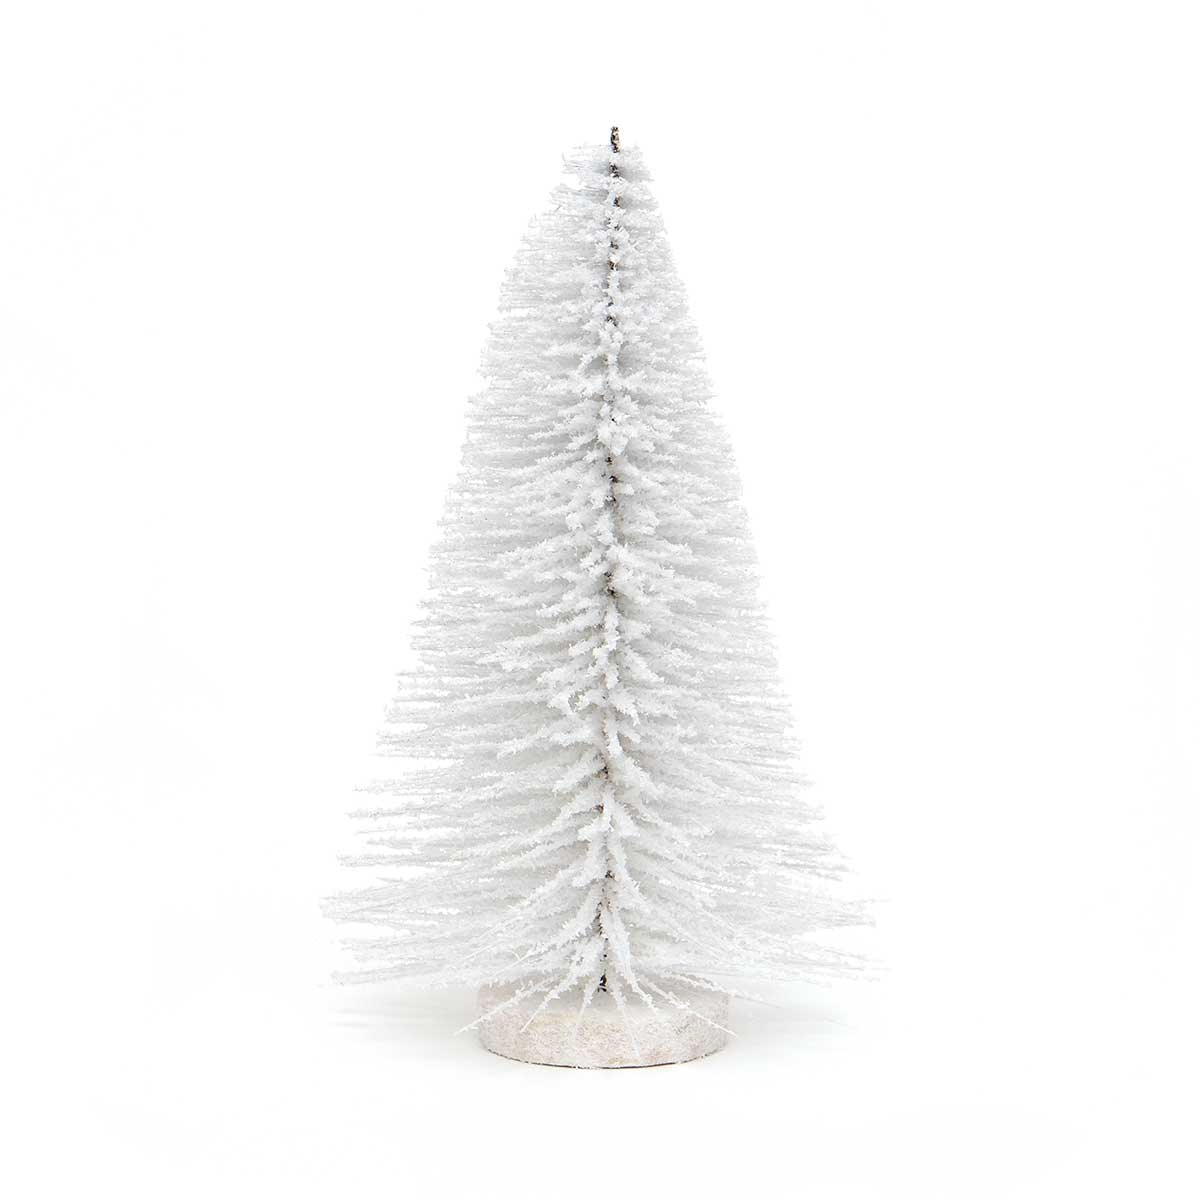 SNOWED BRISTLE TREE FLOCKED WHITE WITH GLITTER AND WOOD BASE